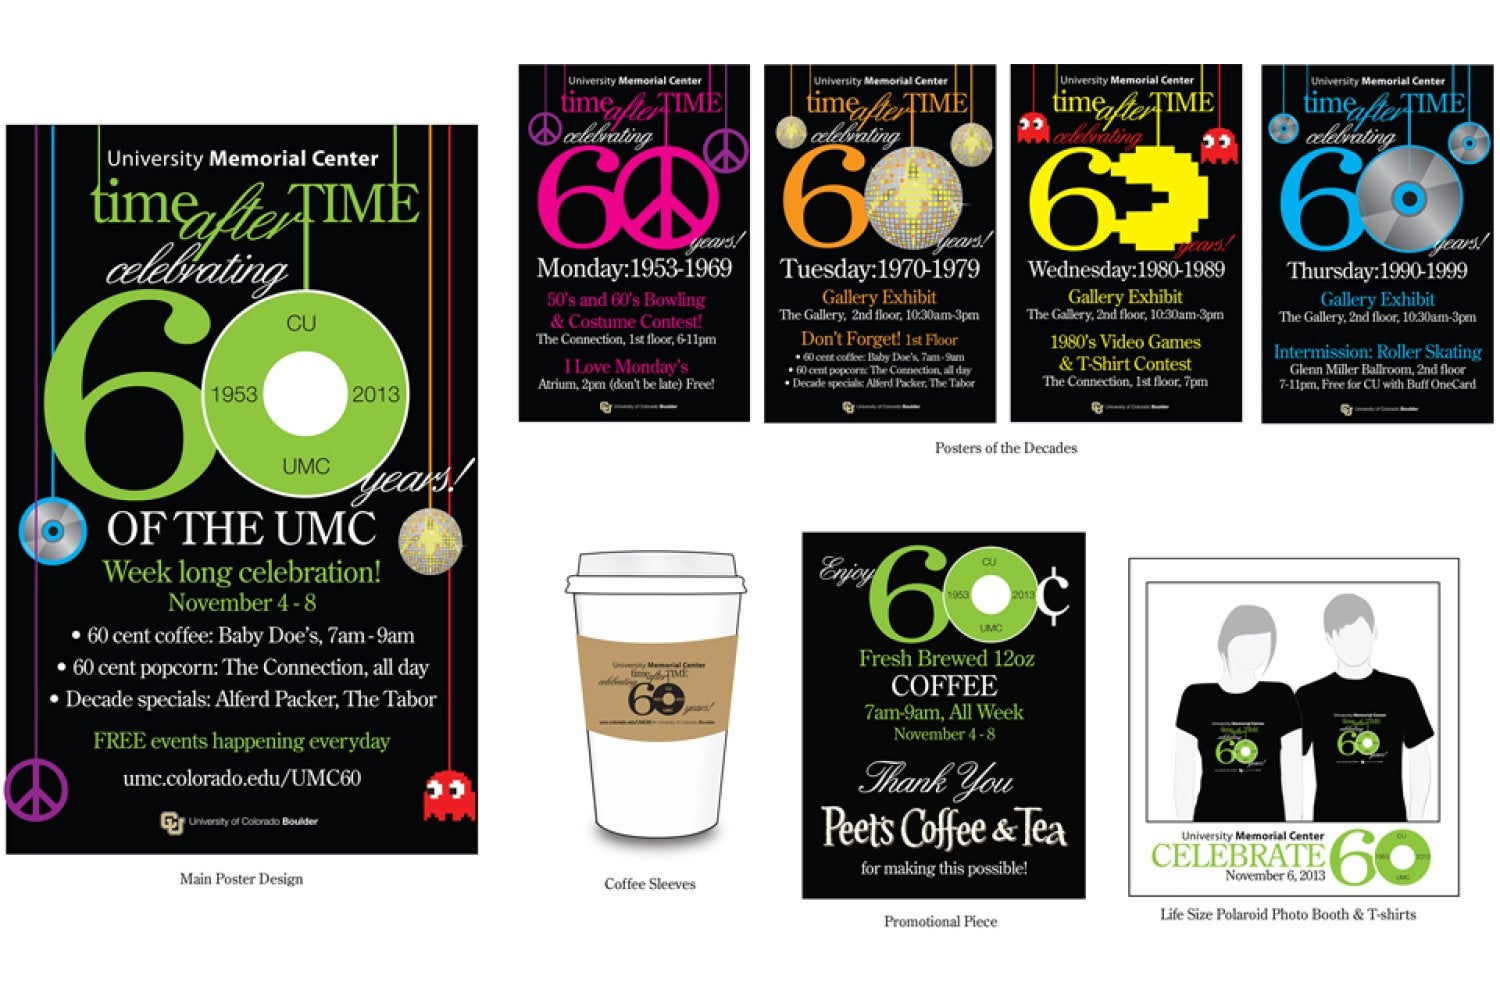 The design work for UMC 60th Birthday Campaign that won 1st place.